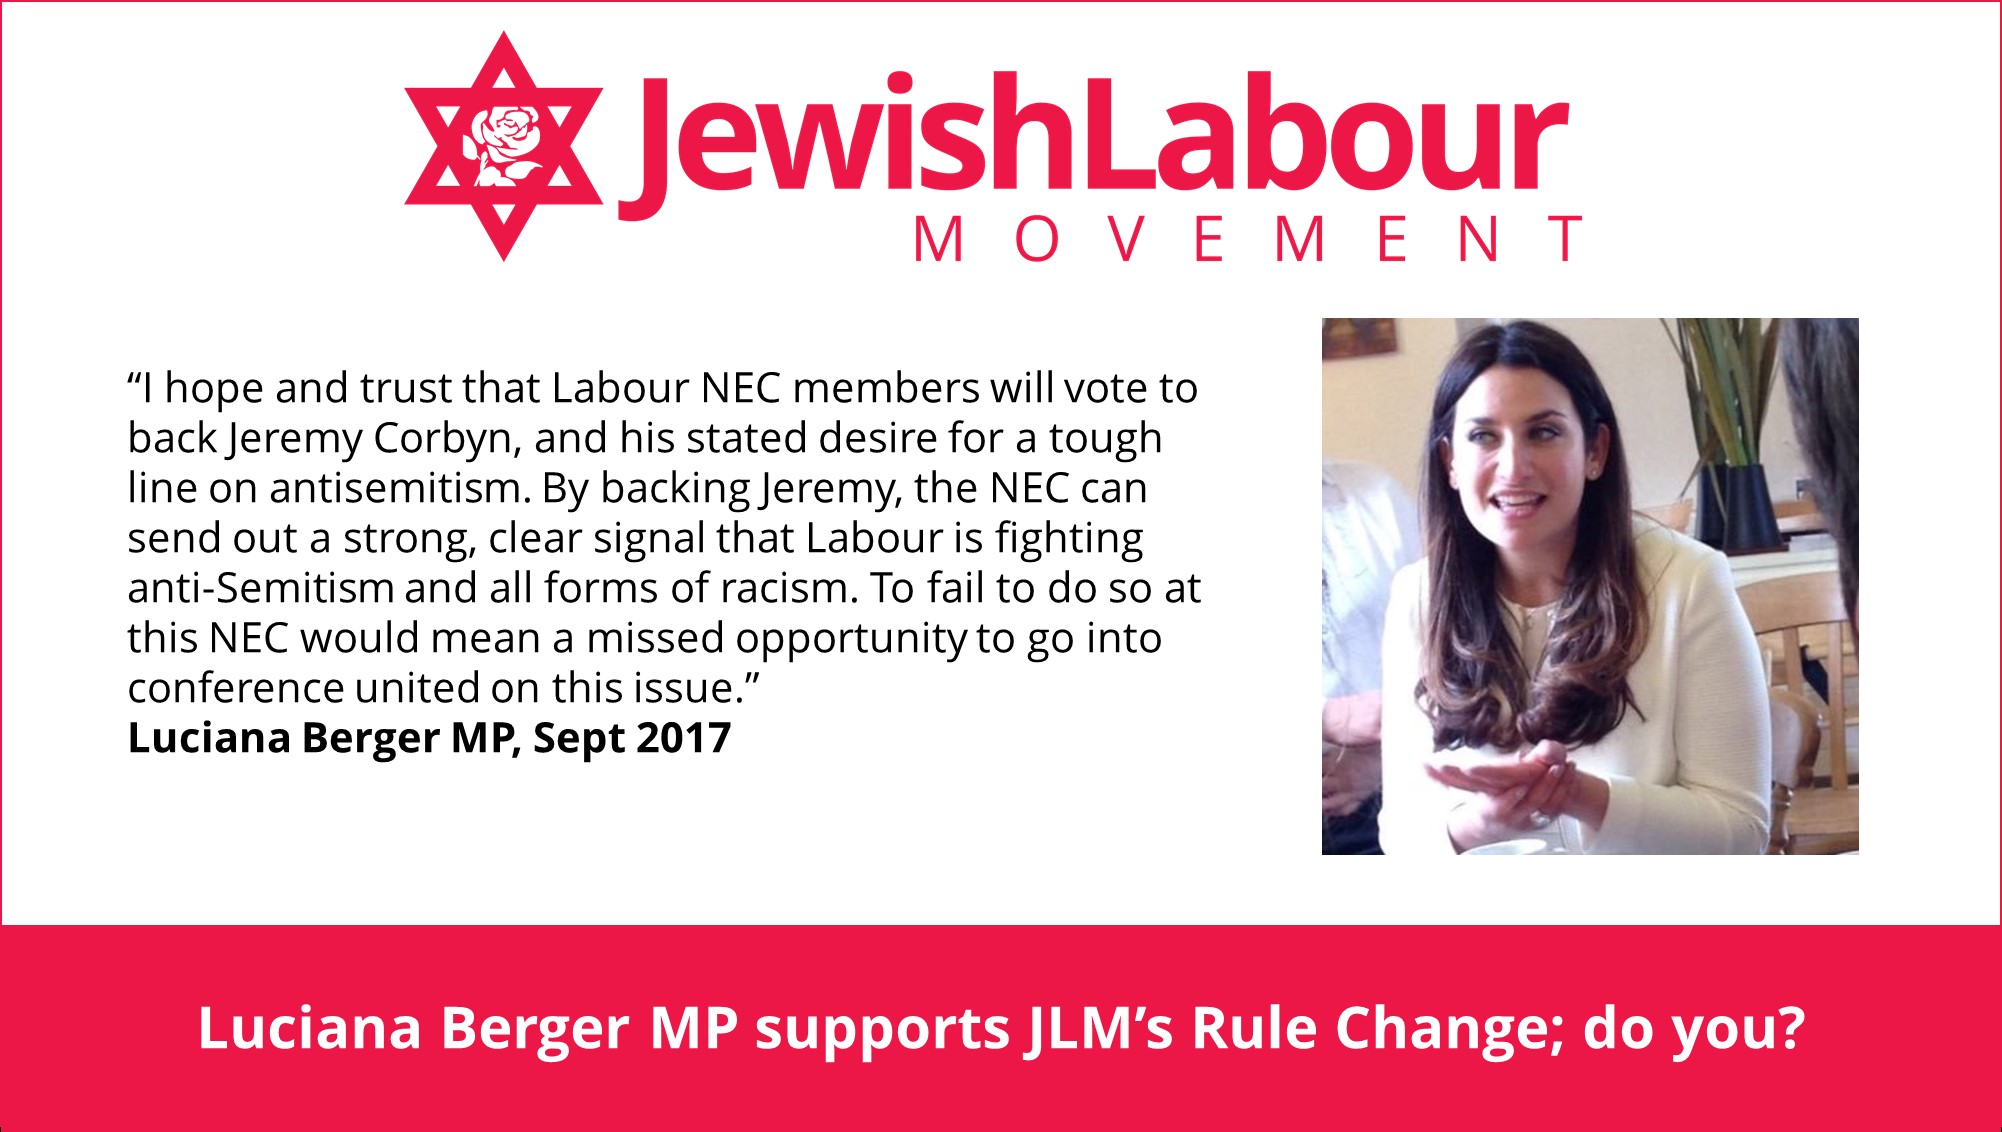 luciana_berger_rule_change.jpg